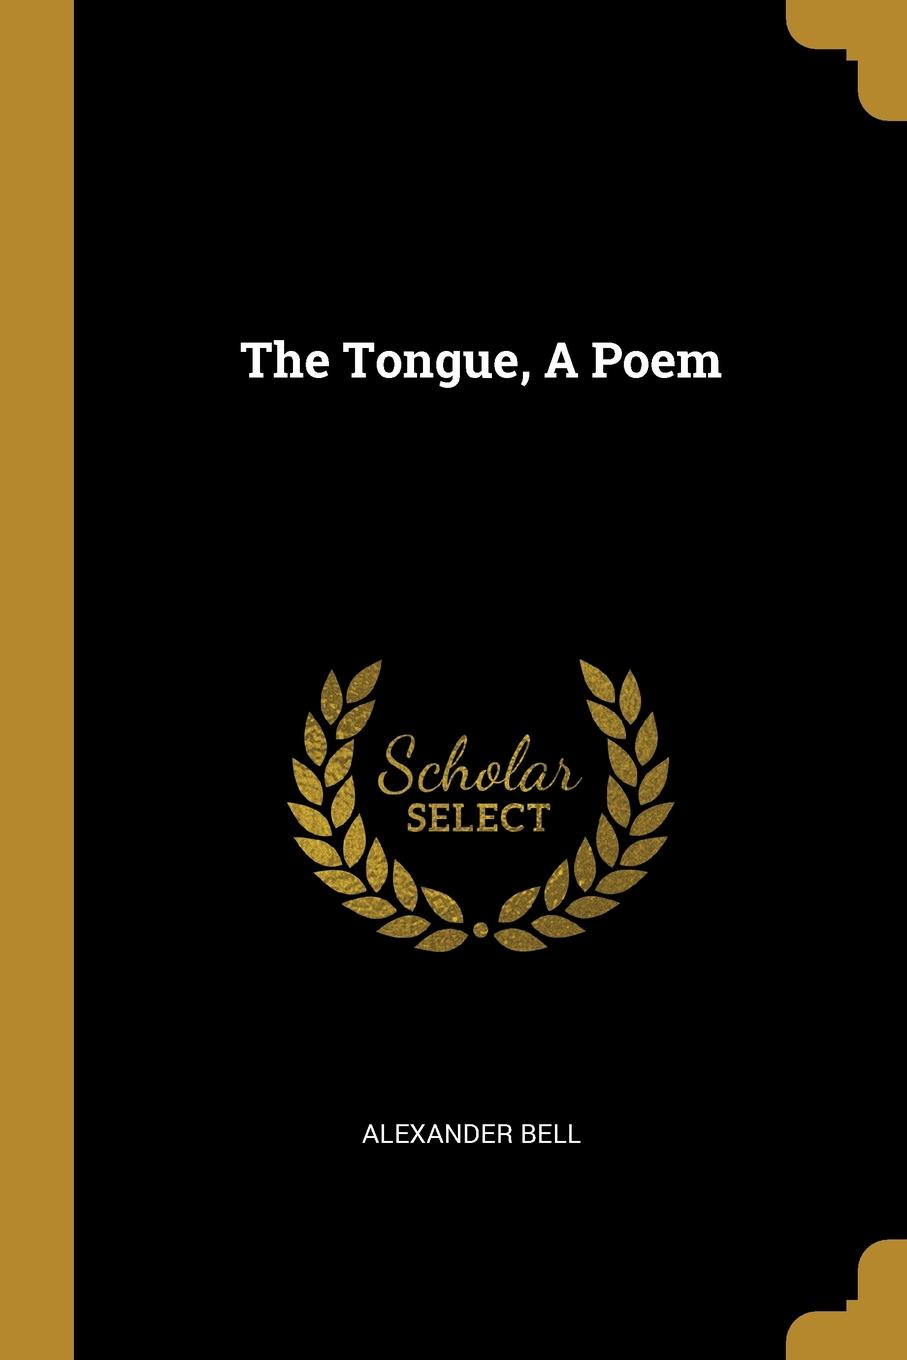 Alexander Bell The Tongue, A Poem